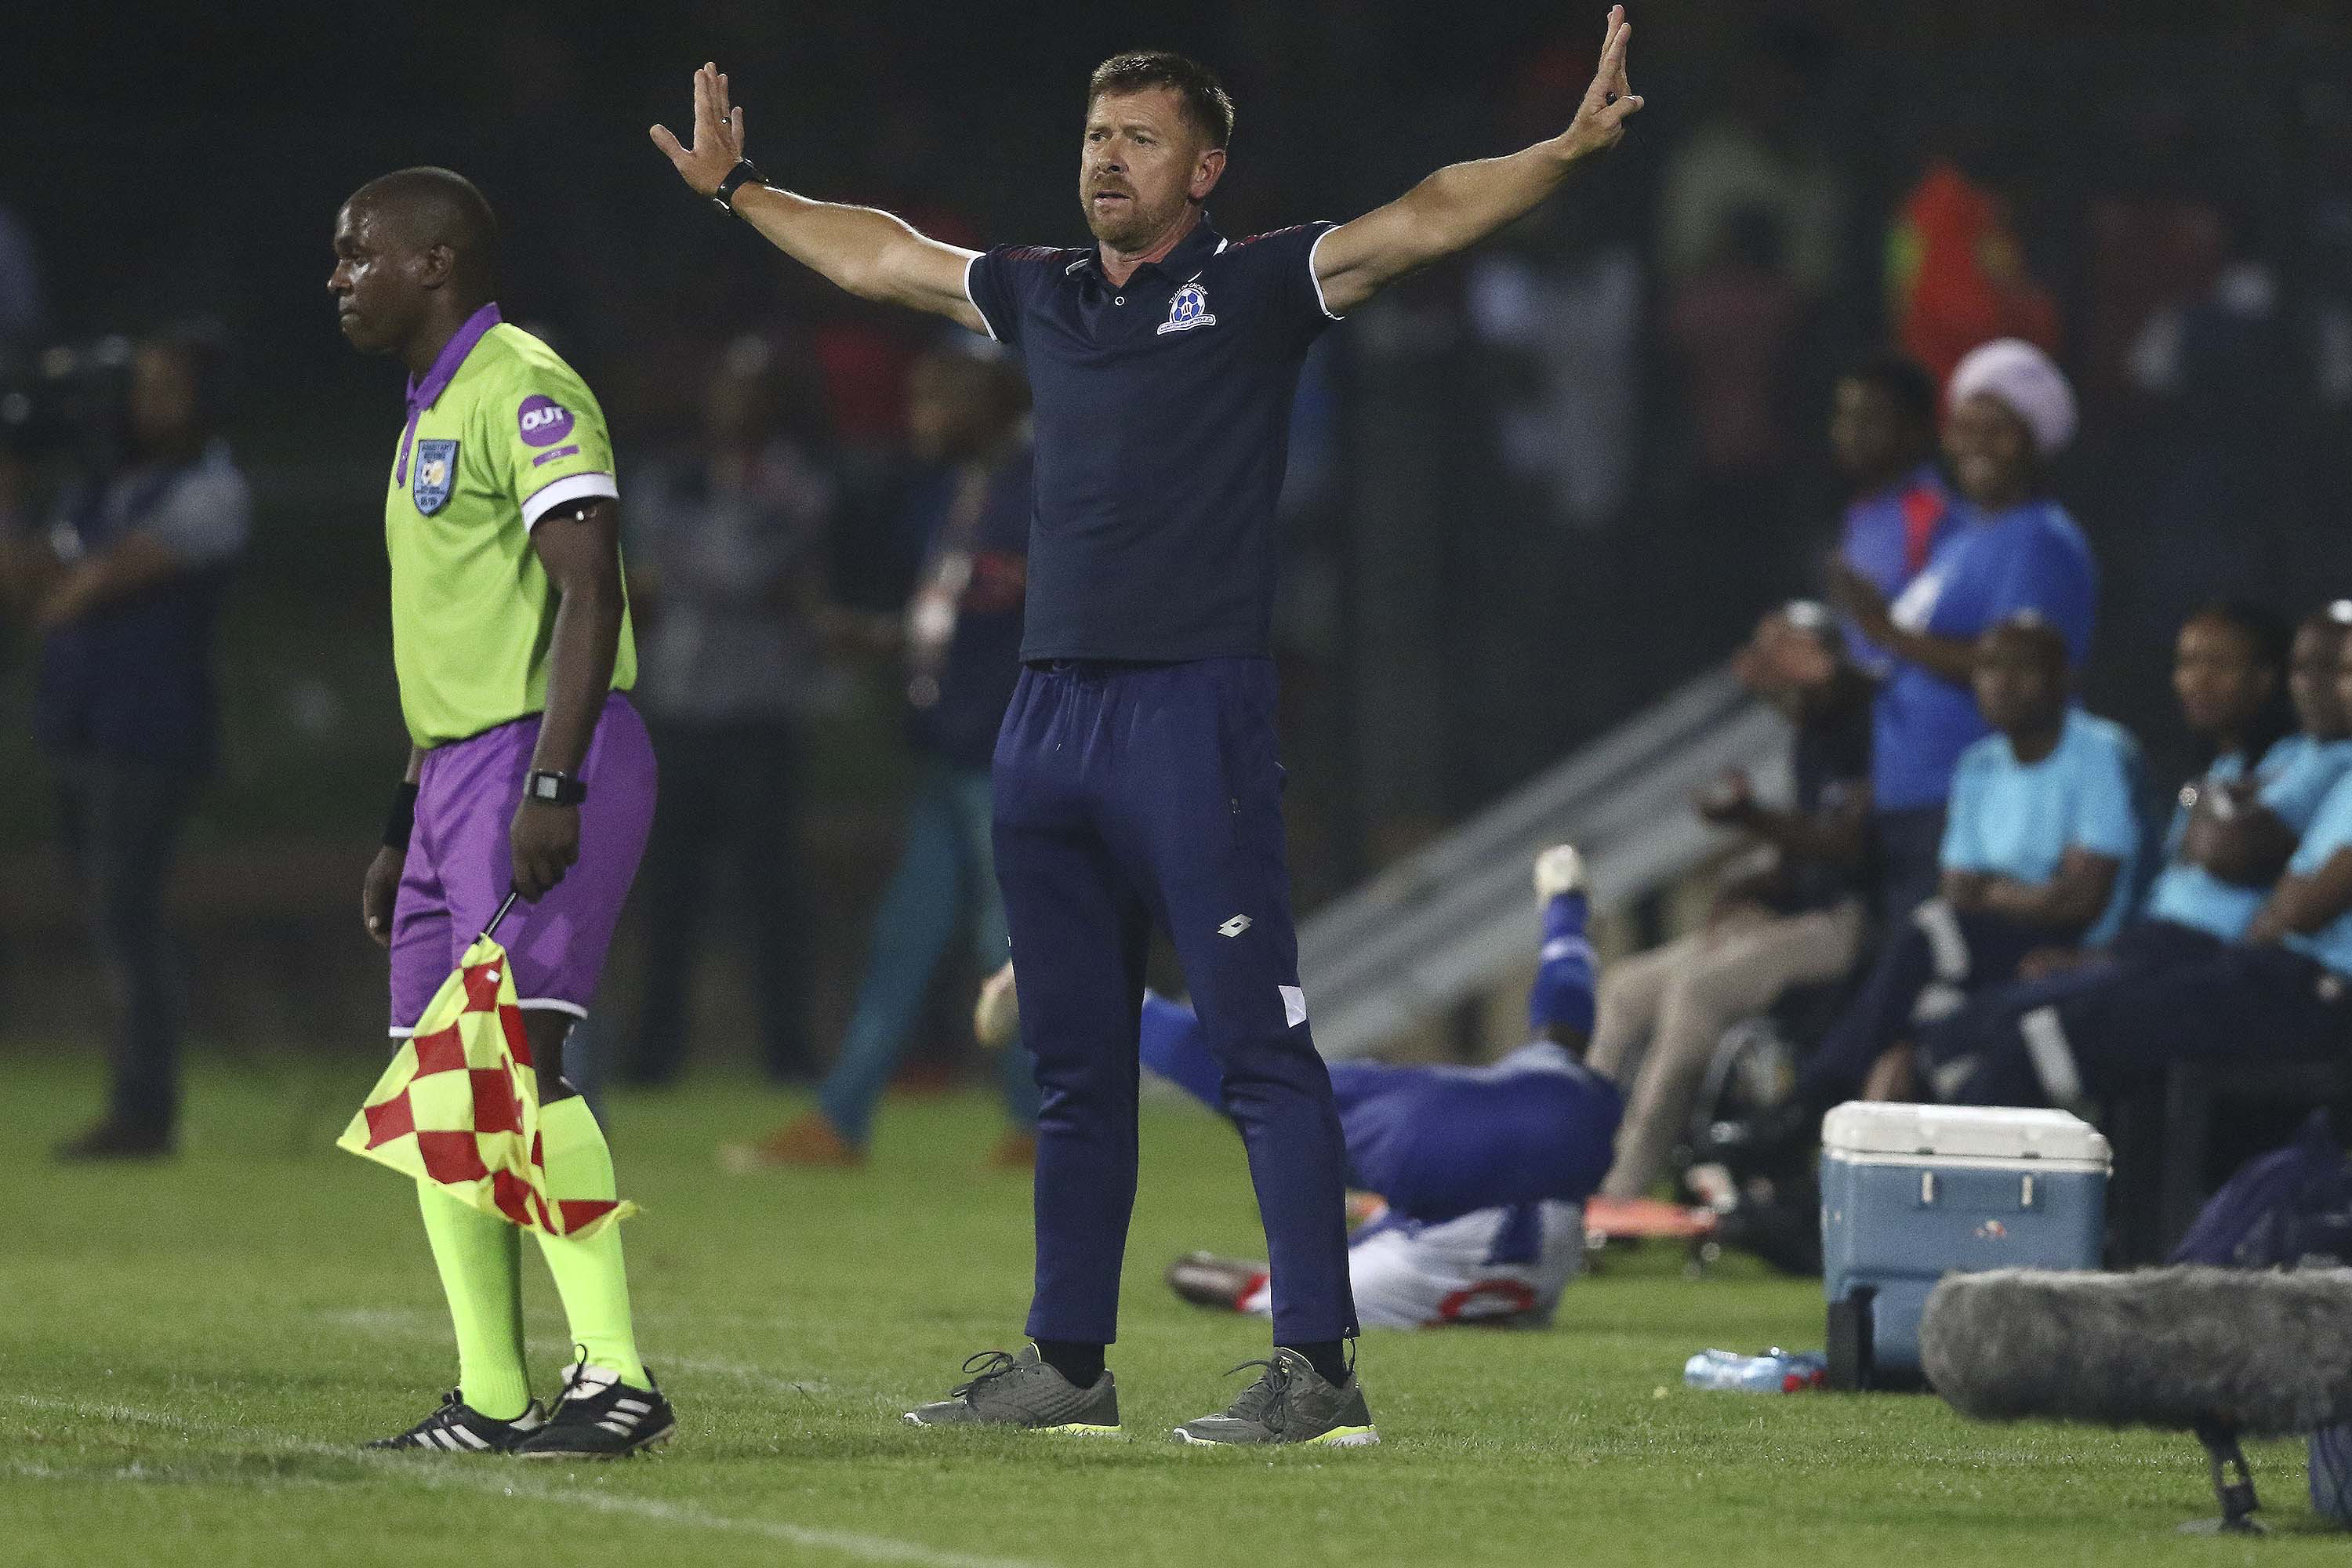 8 February 2019: Eric Tinkler sends a clear signal from the touchline to his Maritzburg United players during the Absa Premiership match against Polokwane City at Harry Gwala Stadium in Pietermaritzburg. (Photograph by Anesh Debiky/Gallo Images)